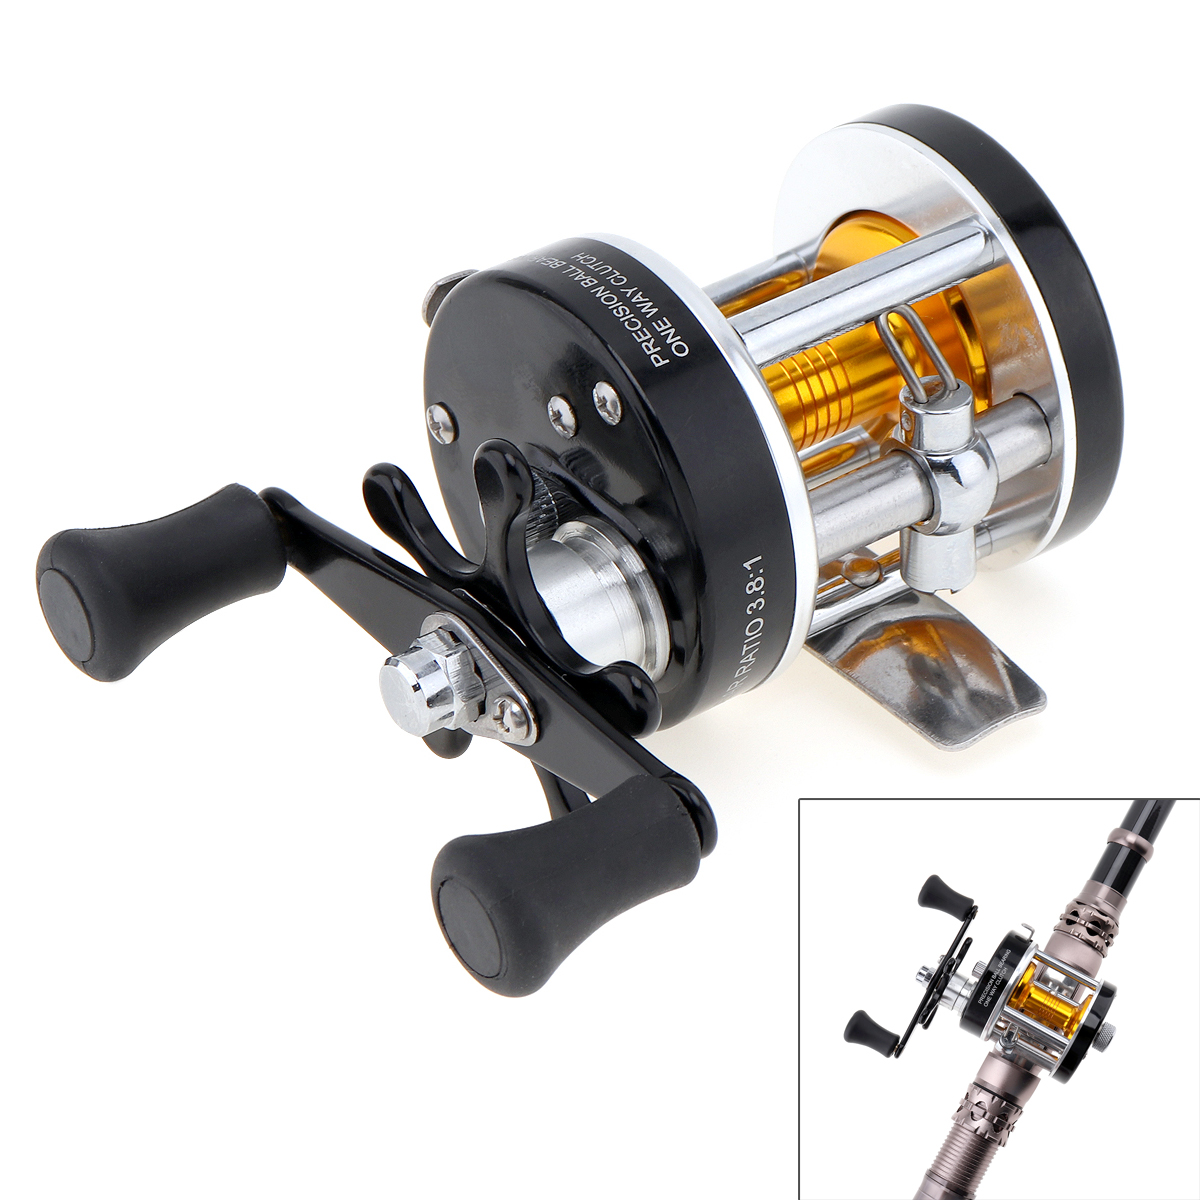 Metal Drum Fishing Reel Gear Ratio 3.8:1 Right Hand Trolling Reel Casting Sea Fishing Reel Saltwater Bait Casting Reel Coil